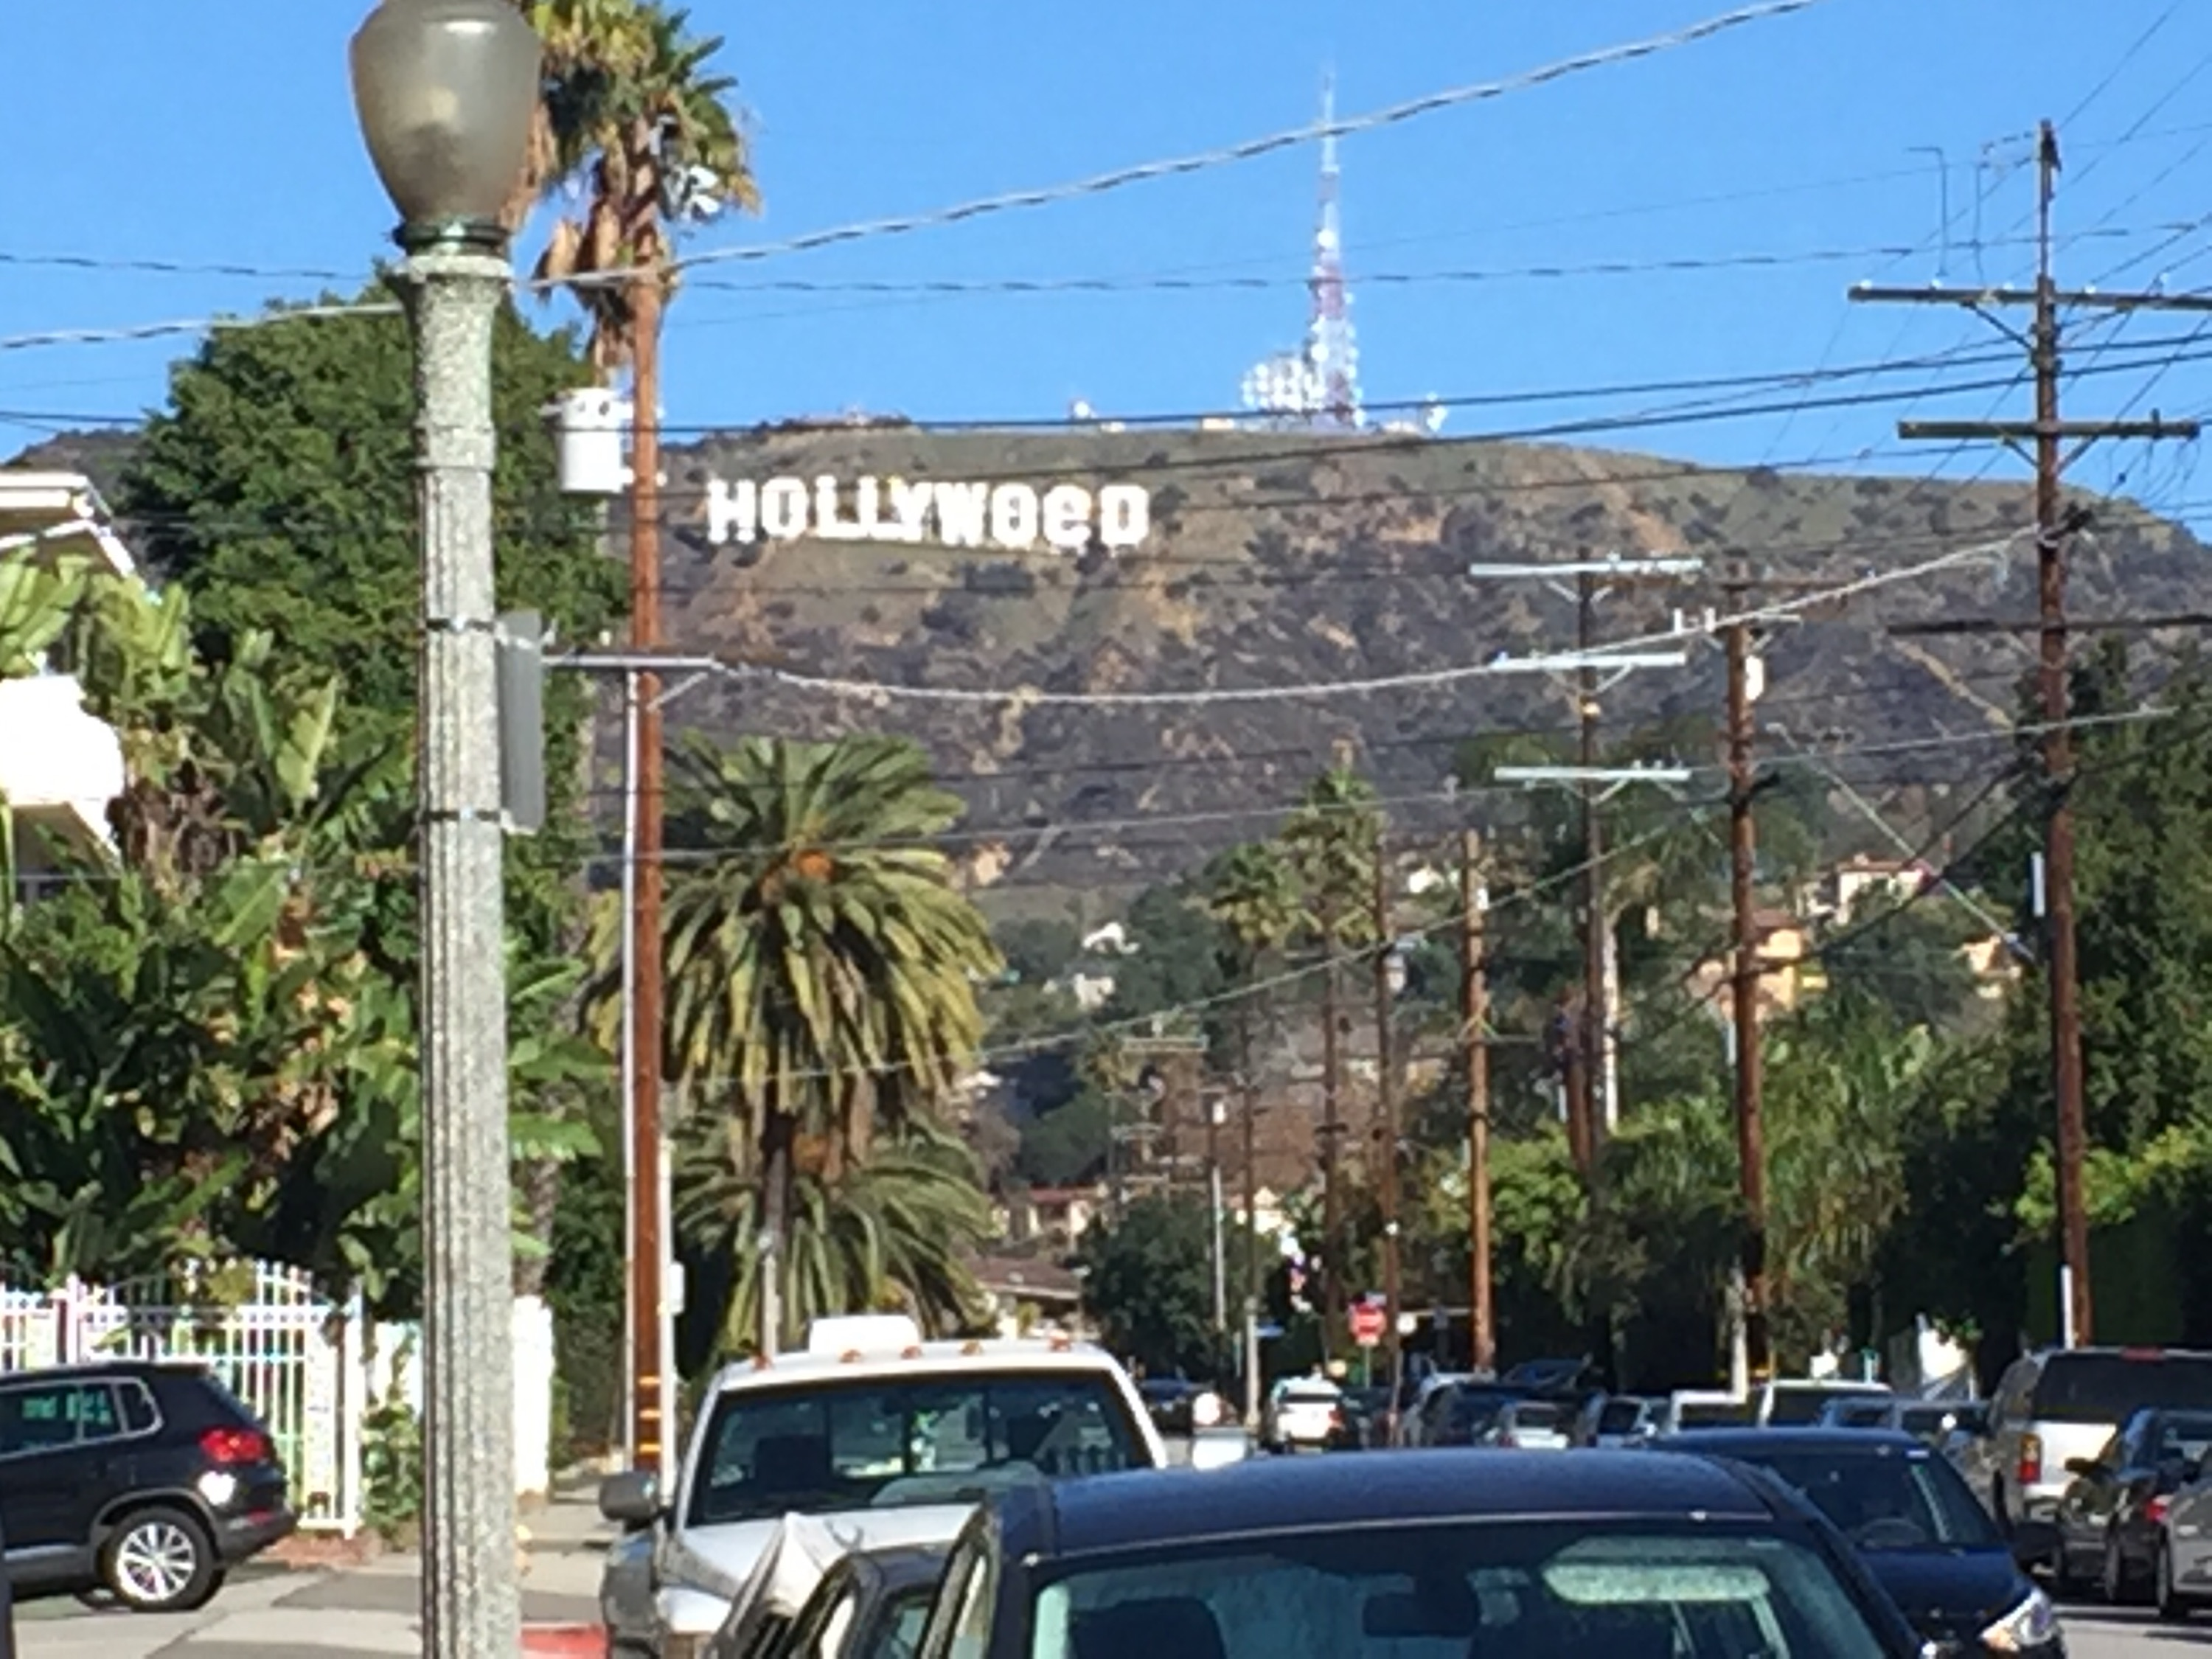 HOLLYWeed Sign